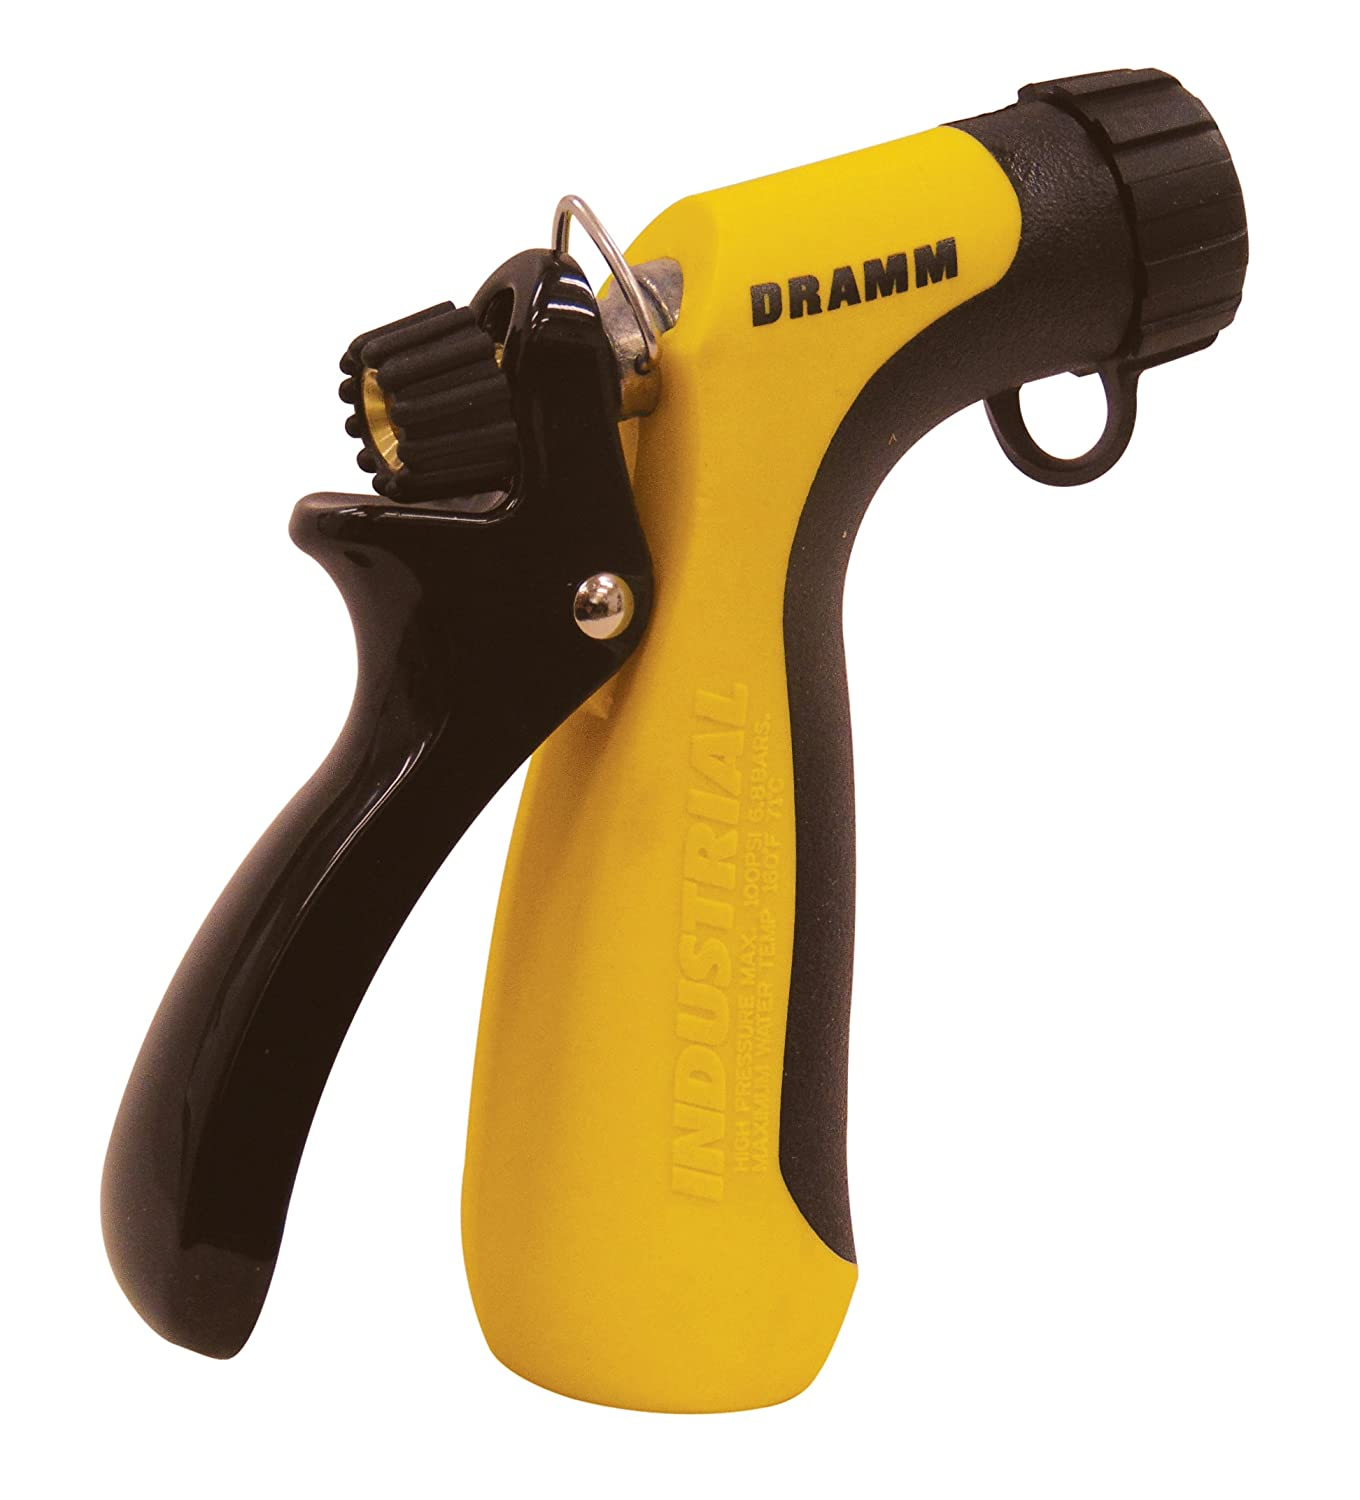 Dramm 12743 Industrial Hot Water Pistol, Yellow